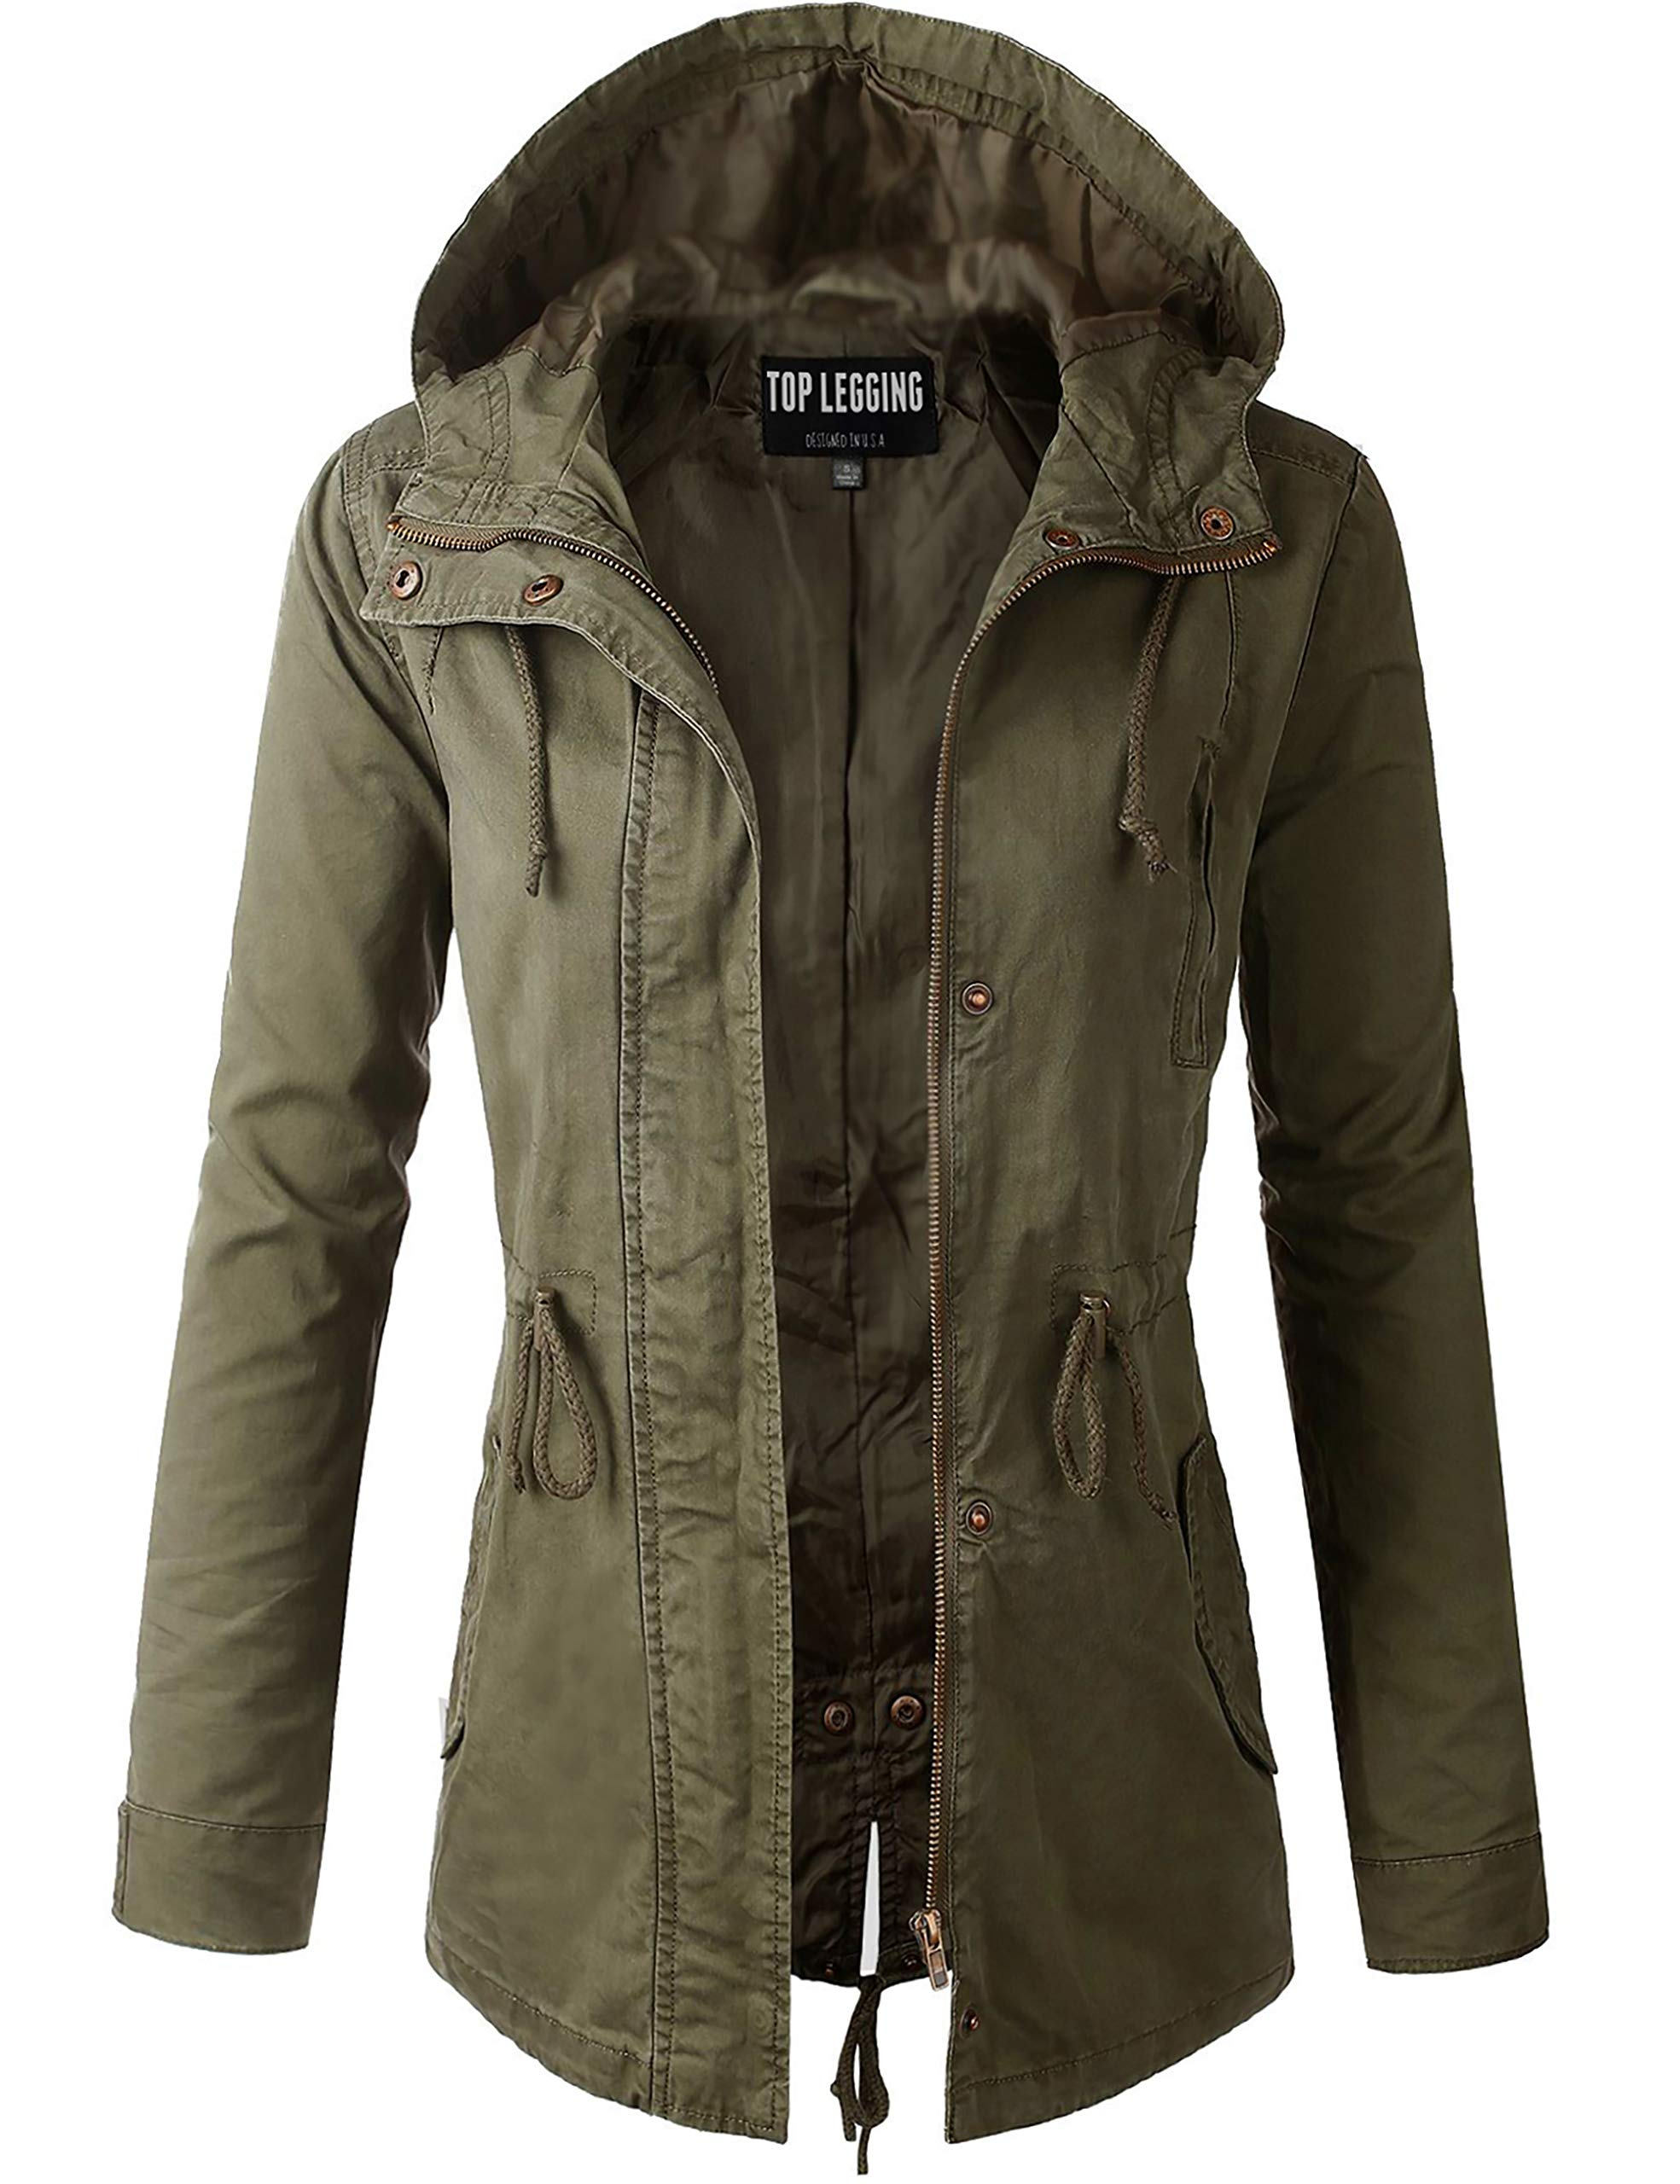 TOP LEGGING TL Women's Militray Anorak Parka Hoodie Jackets with Drawstring Olive Medium by TOP LEGGING